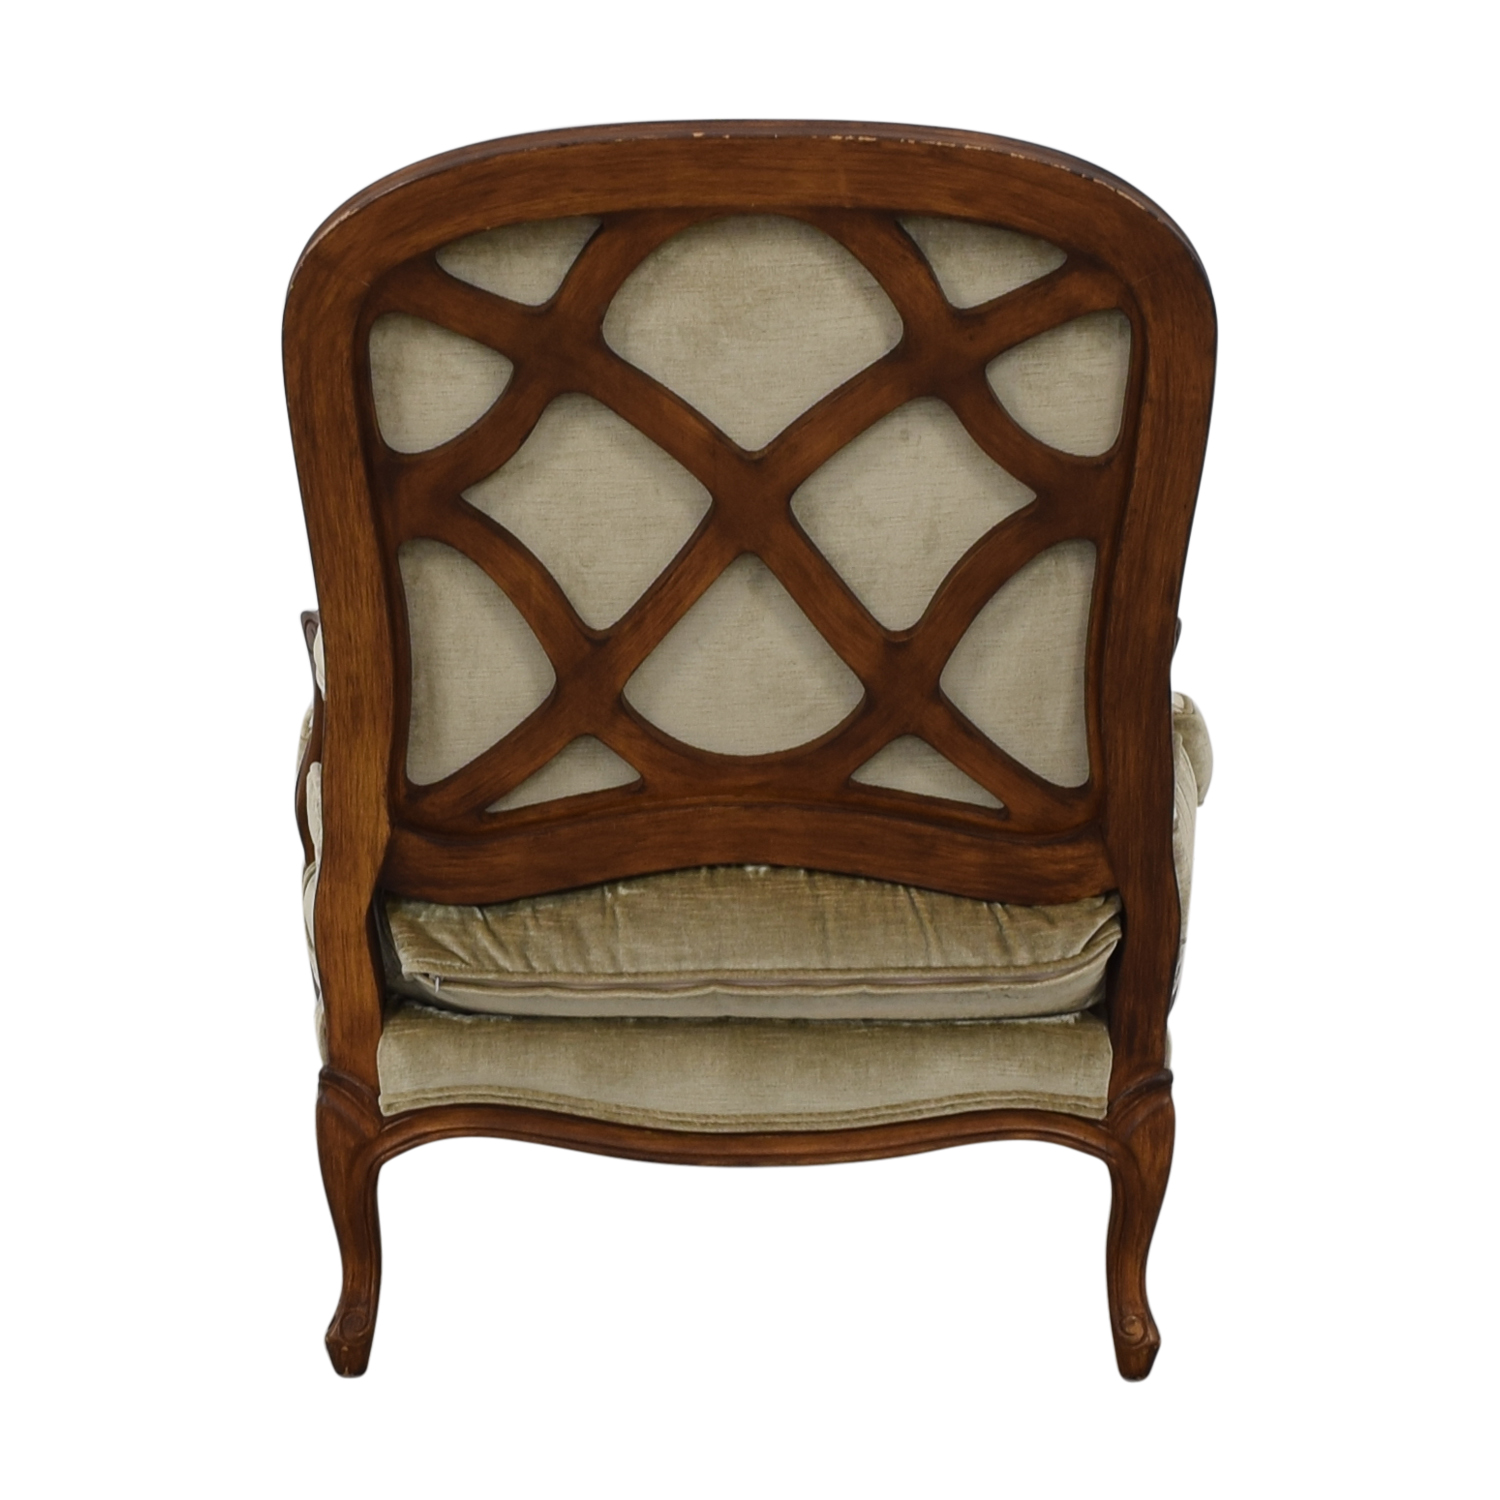 Drexel Heritage Drexel Heritage Country French Accent Chair coupon